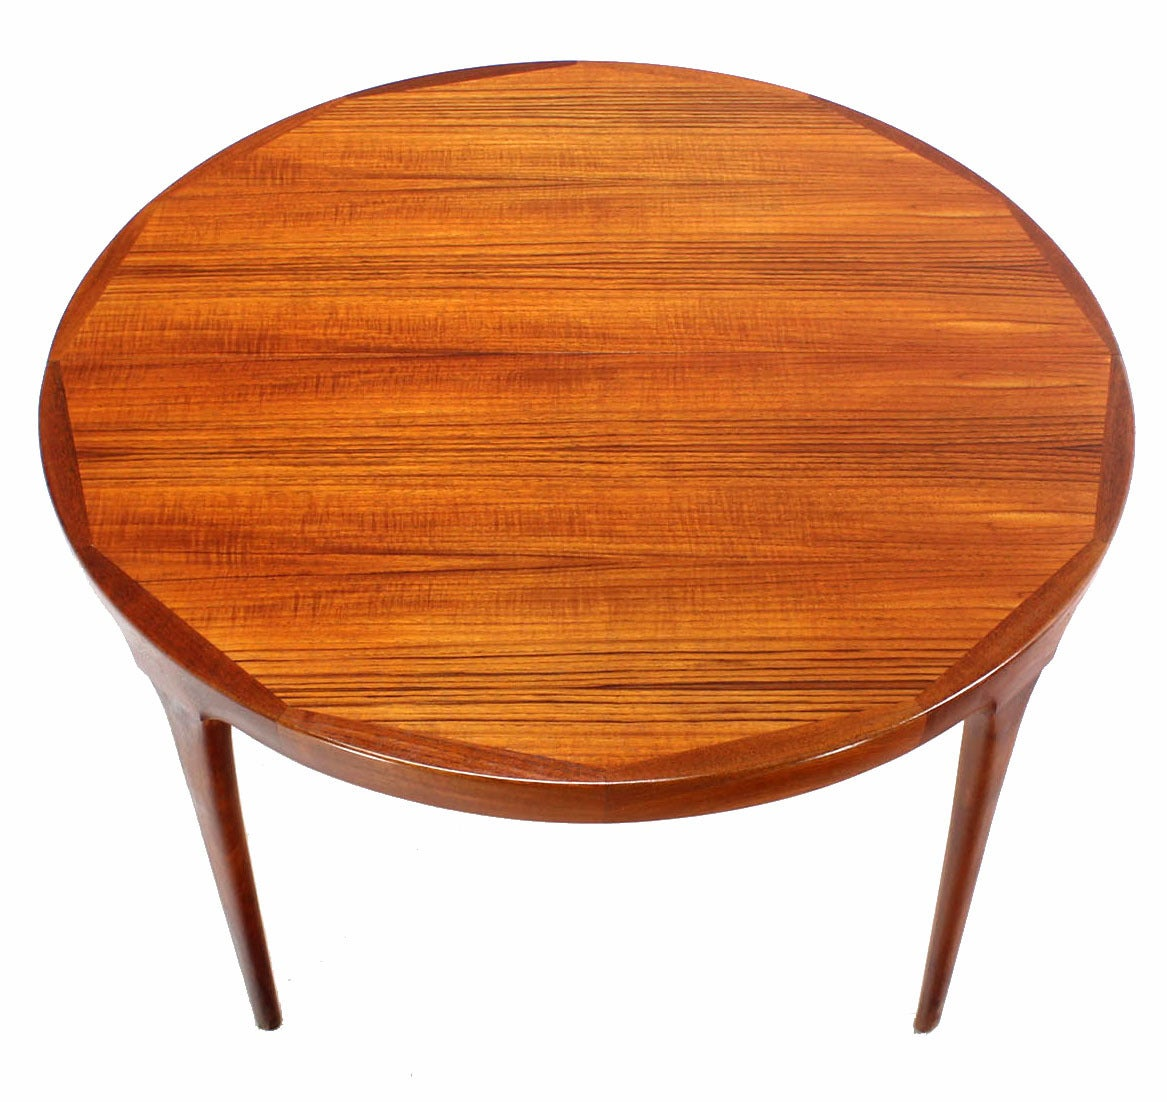 danish mid century modern round teak dining table with two leaves at 1stdibs. Black Bedroom Furniture Sets. Home Design Ideas